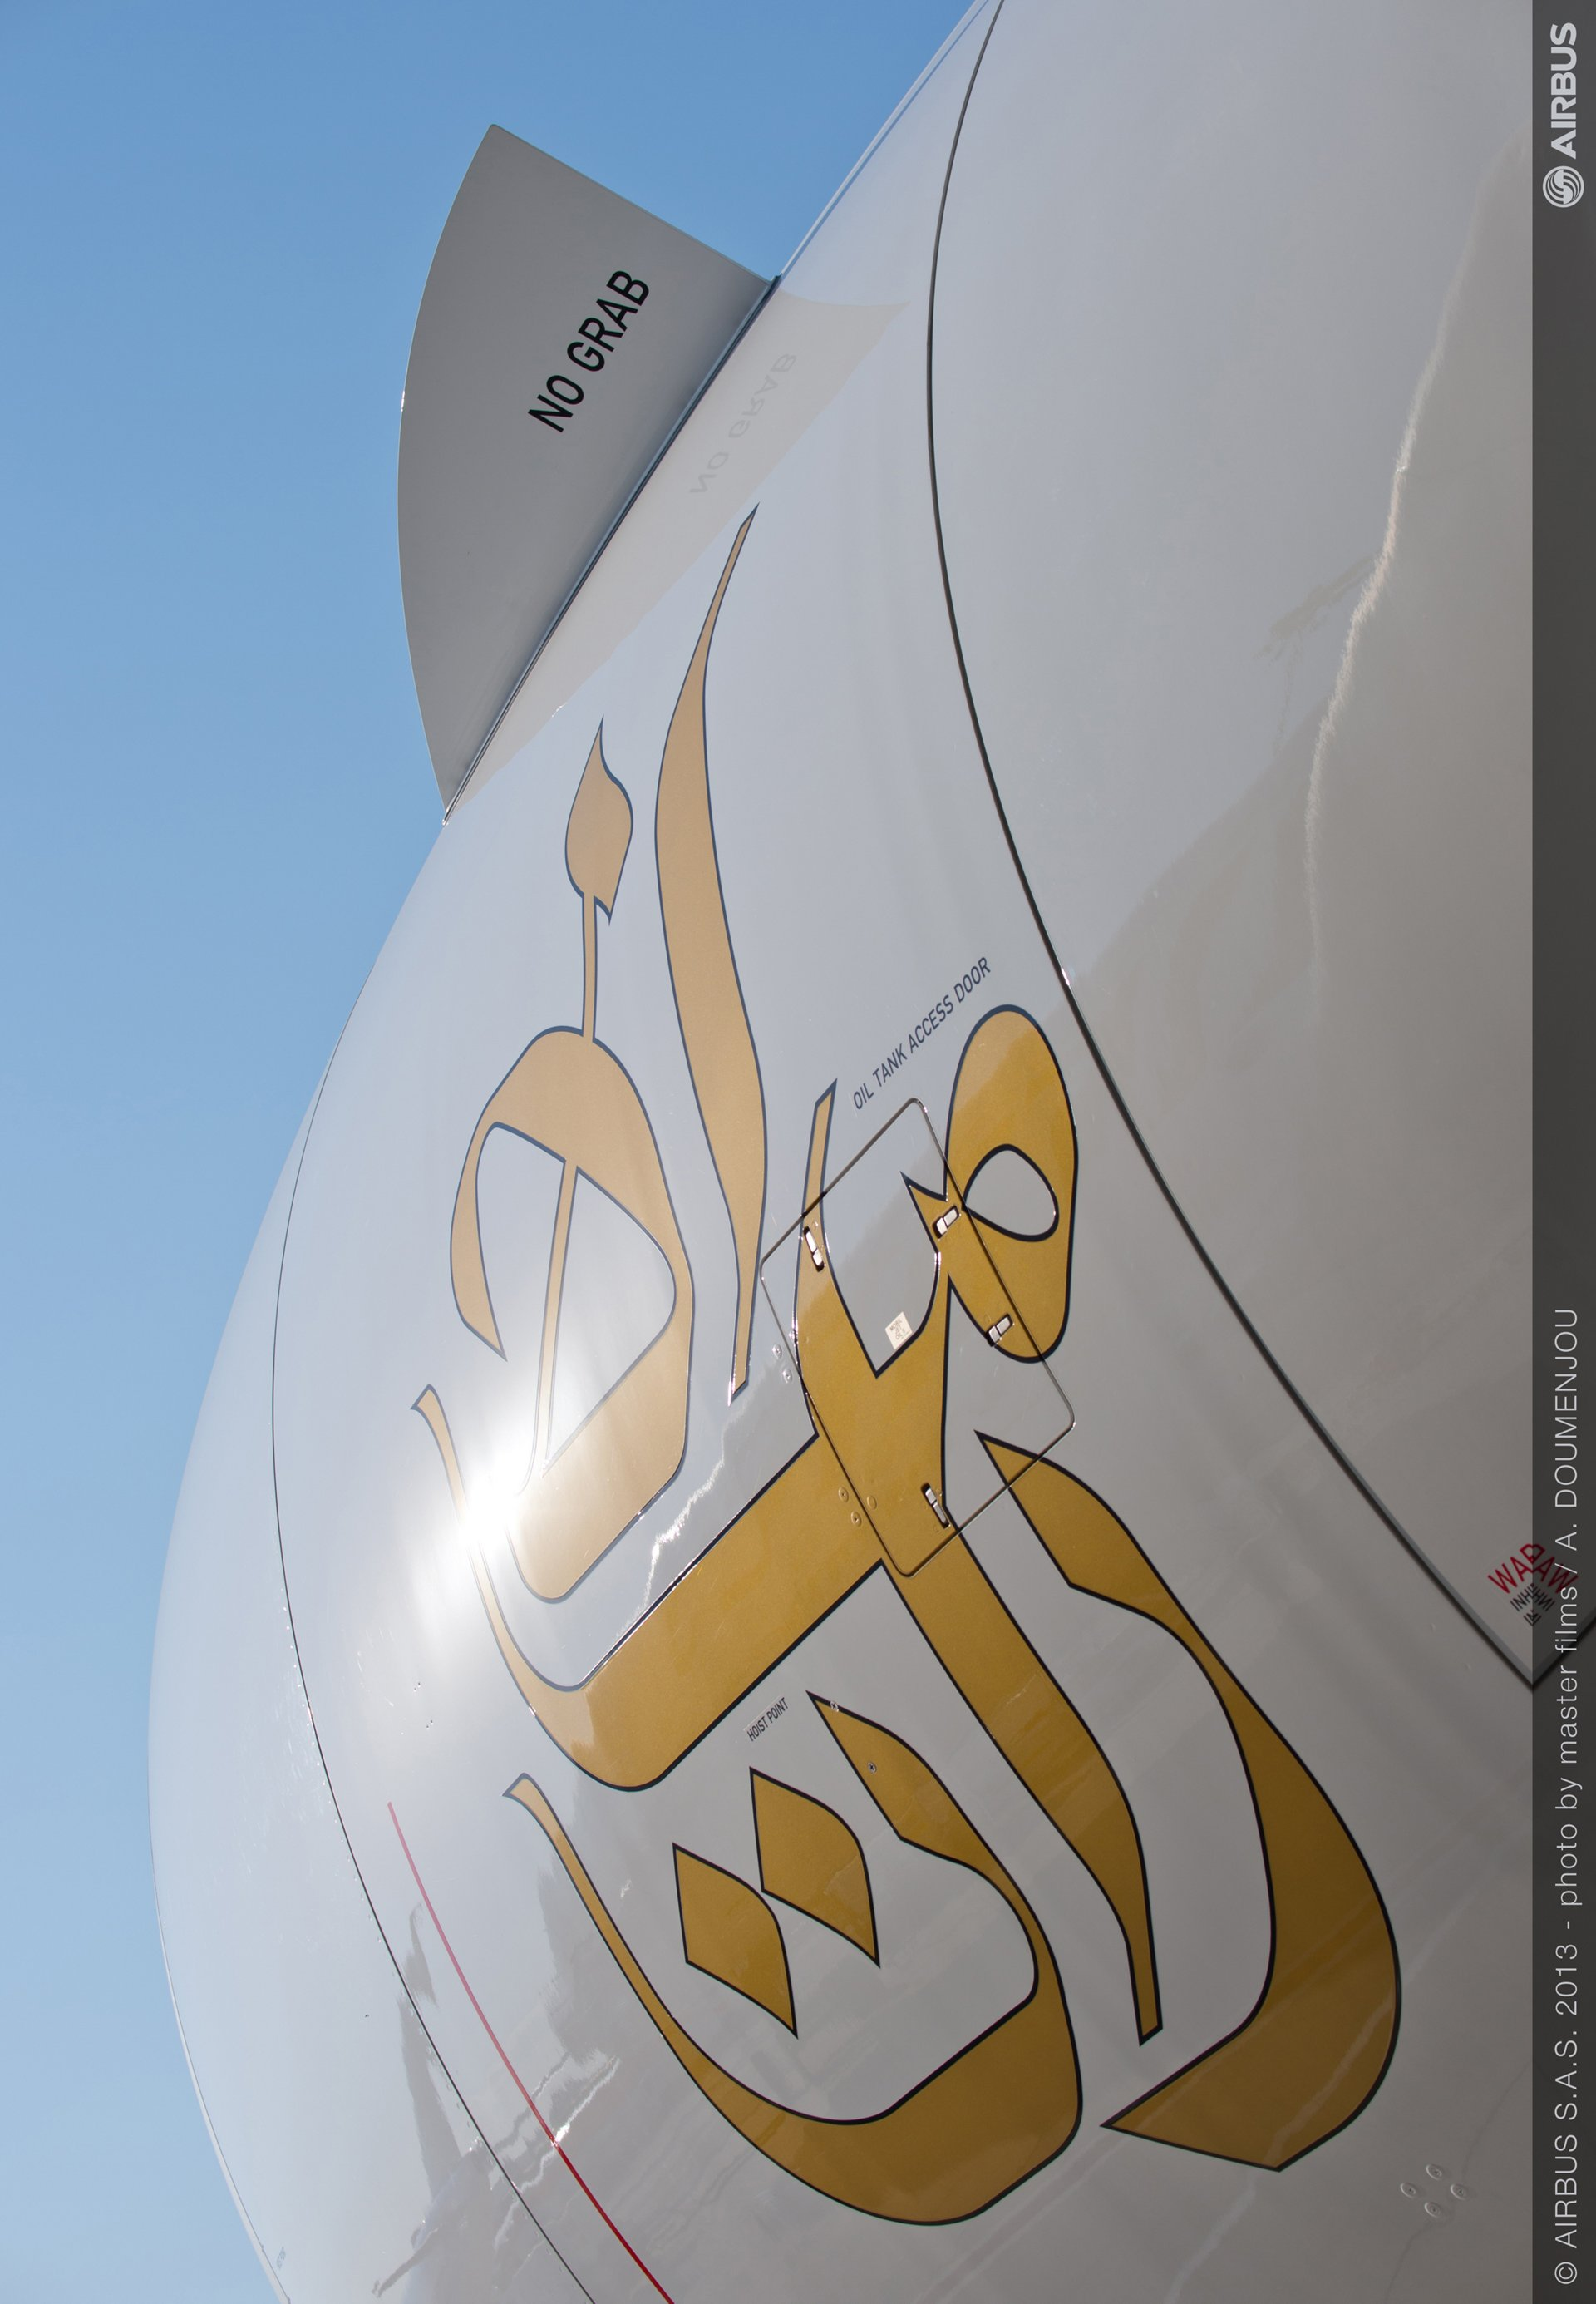 Day one ambiance 03 A380 emirates engine close up